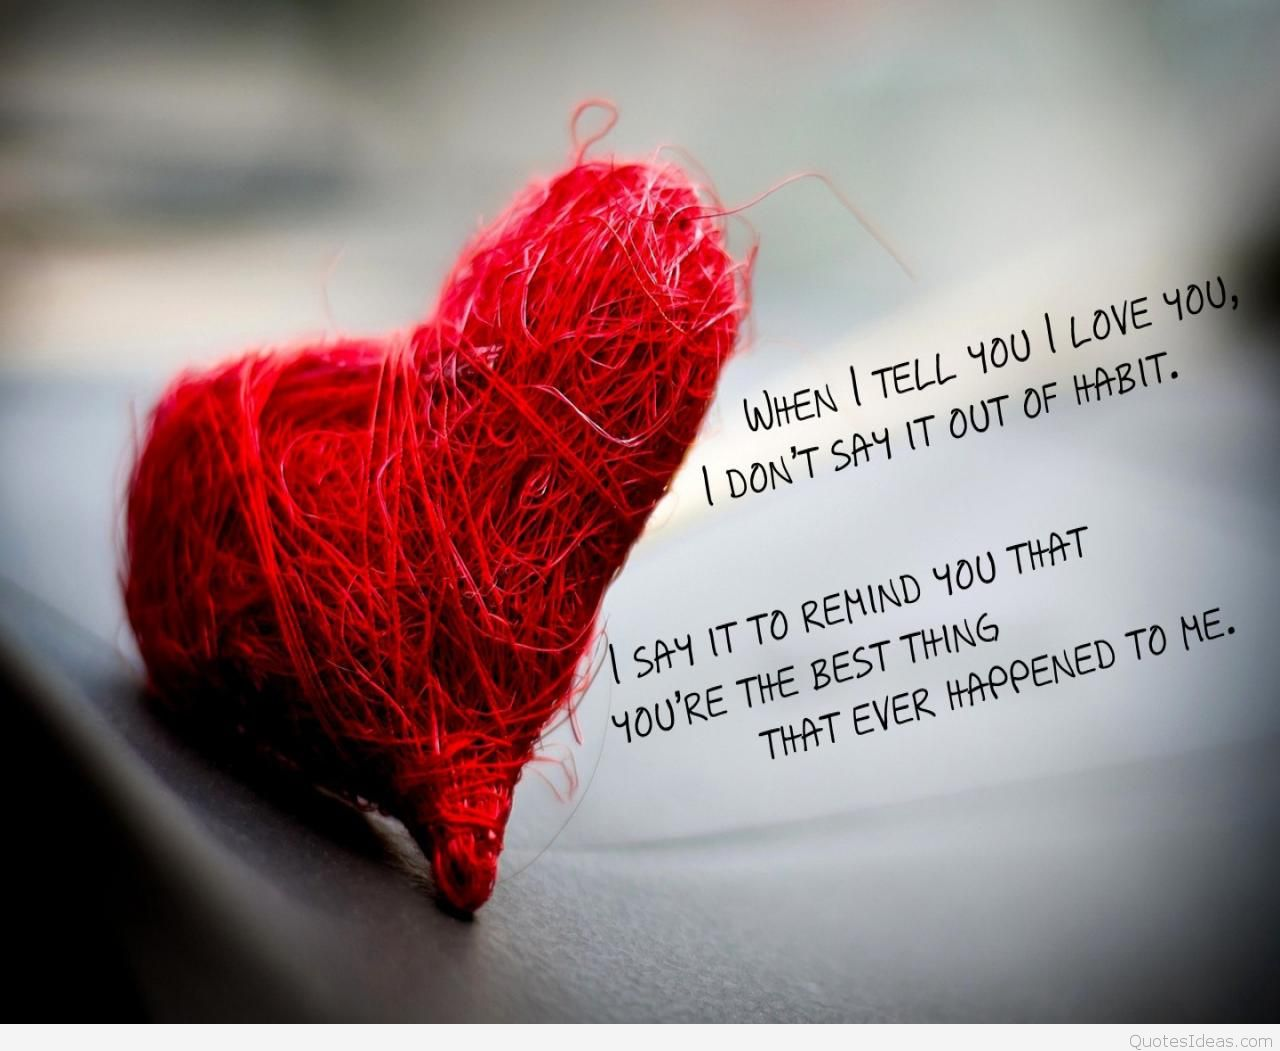 Broken heart sad quotes with pictures and wallpapers hd 1280x1051